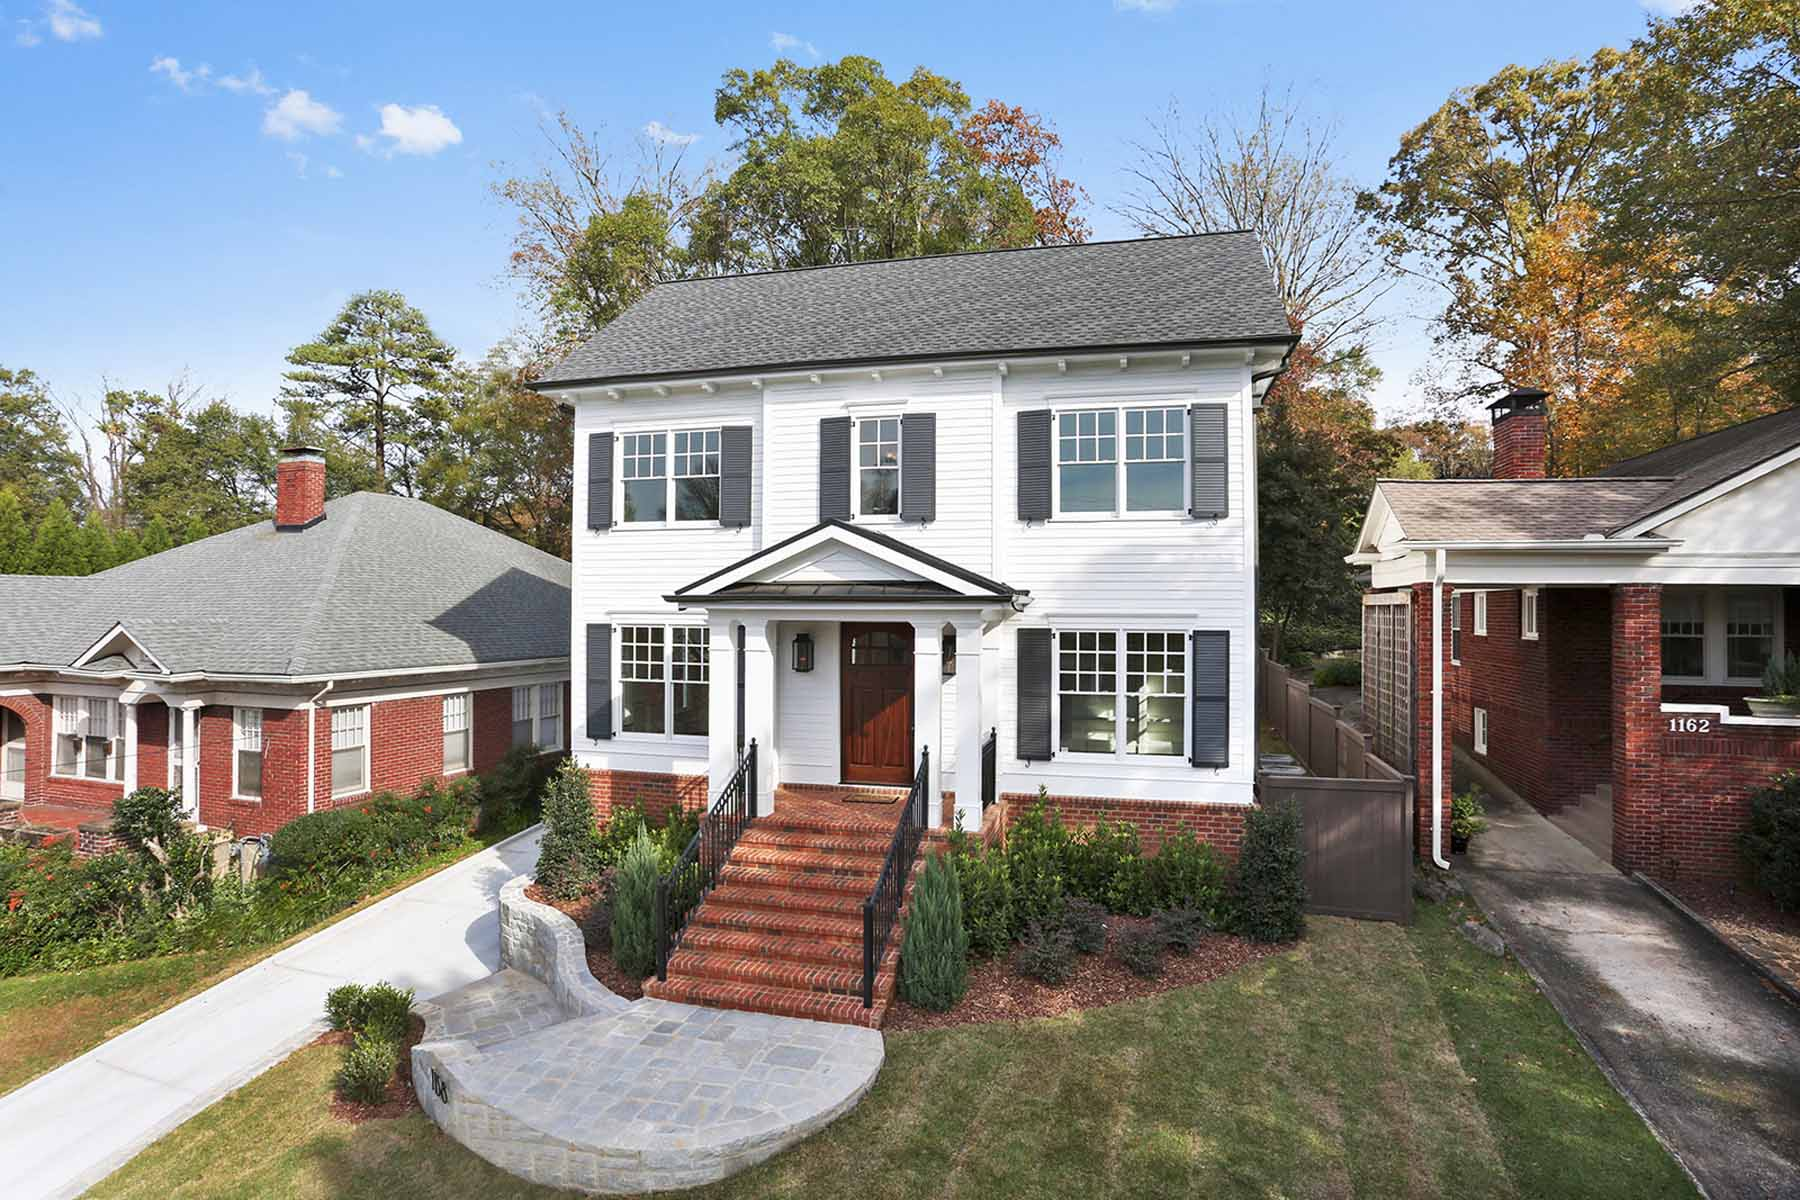 Single Family Home for Sale at Quality New Construction located in the popular intown neighborhood of VH 1158 Virginia Avenue NE Virginia Highland, Atlanta, Georgia 30306 United States